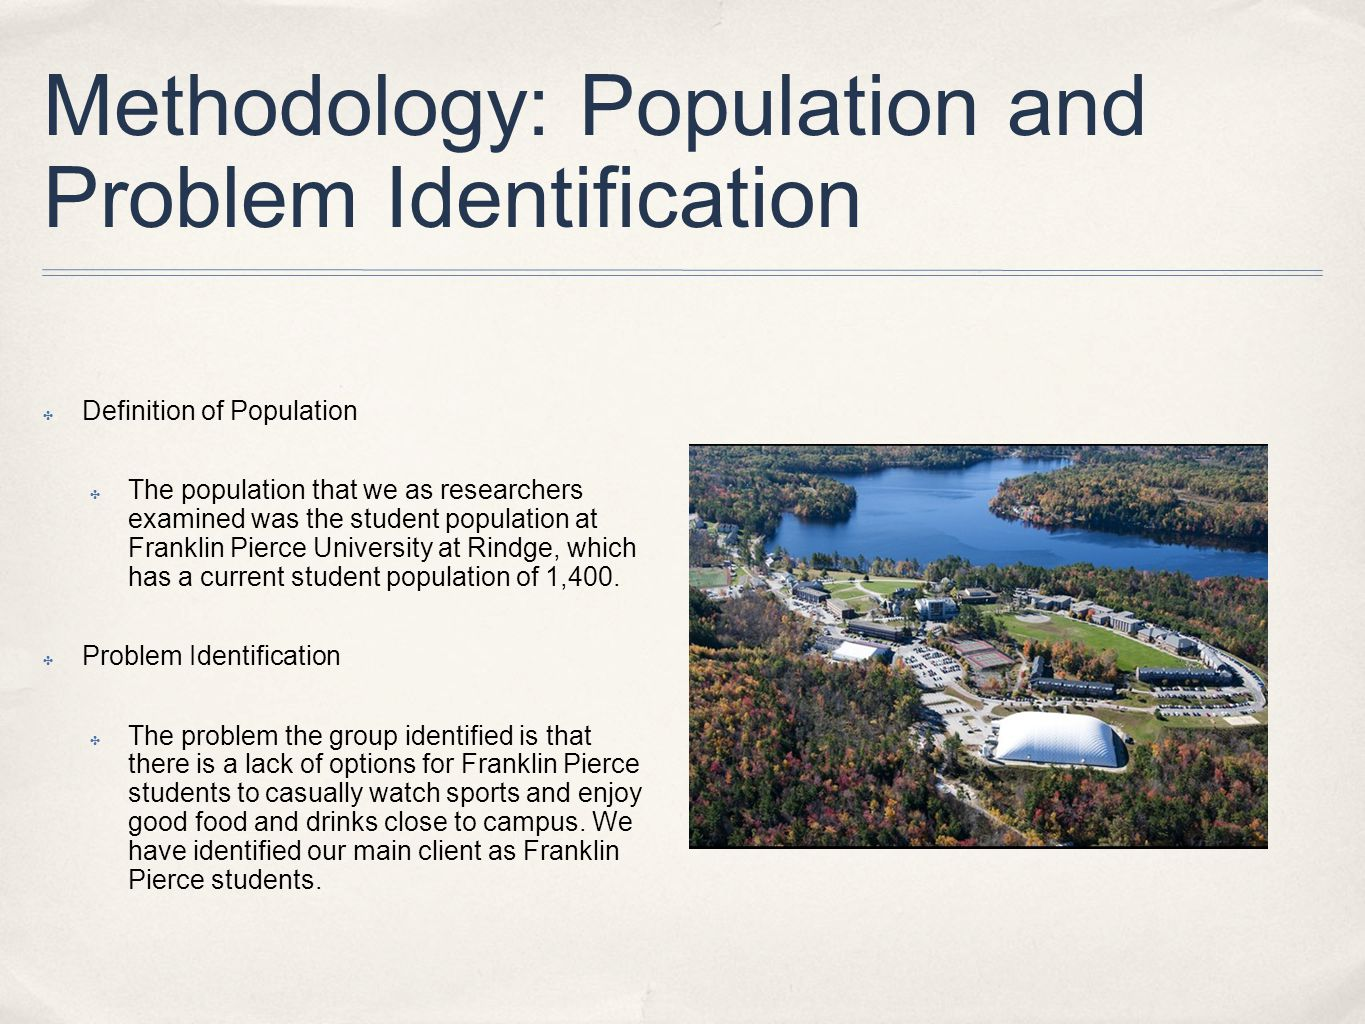 Methodology: Population and Problem Identification Definition of Population The population that we as researchers examined was the student population at Franklin Pierce University at Rindge, which has a current student population of 1,400.